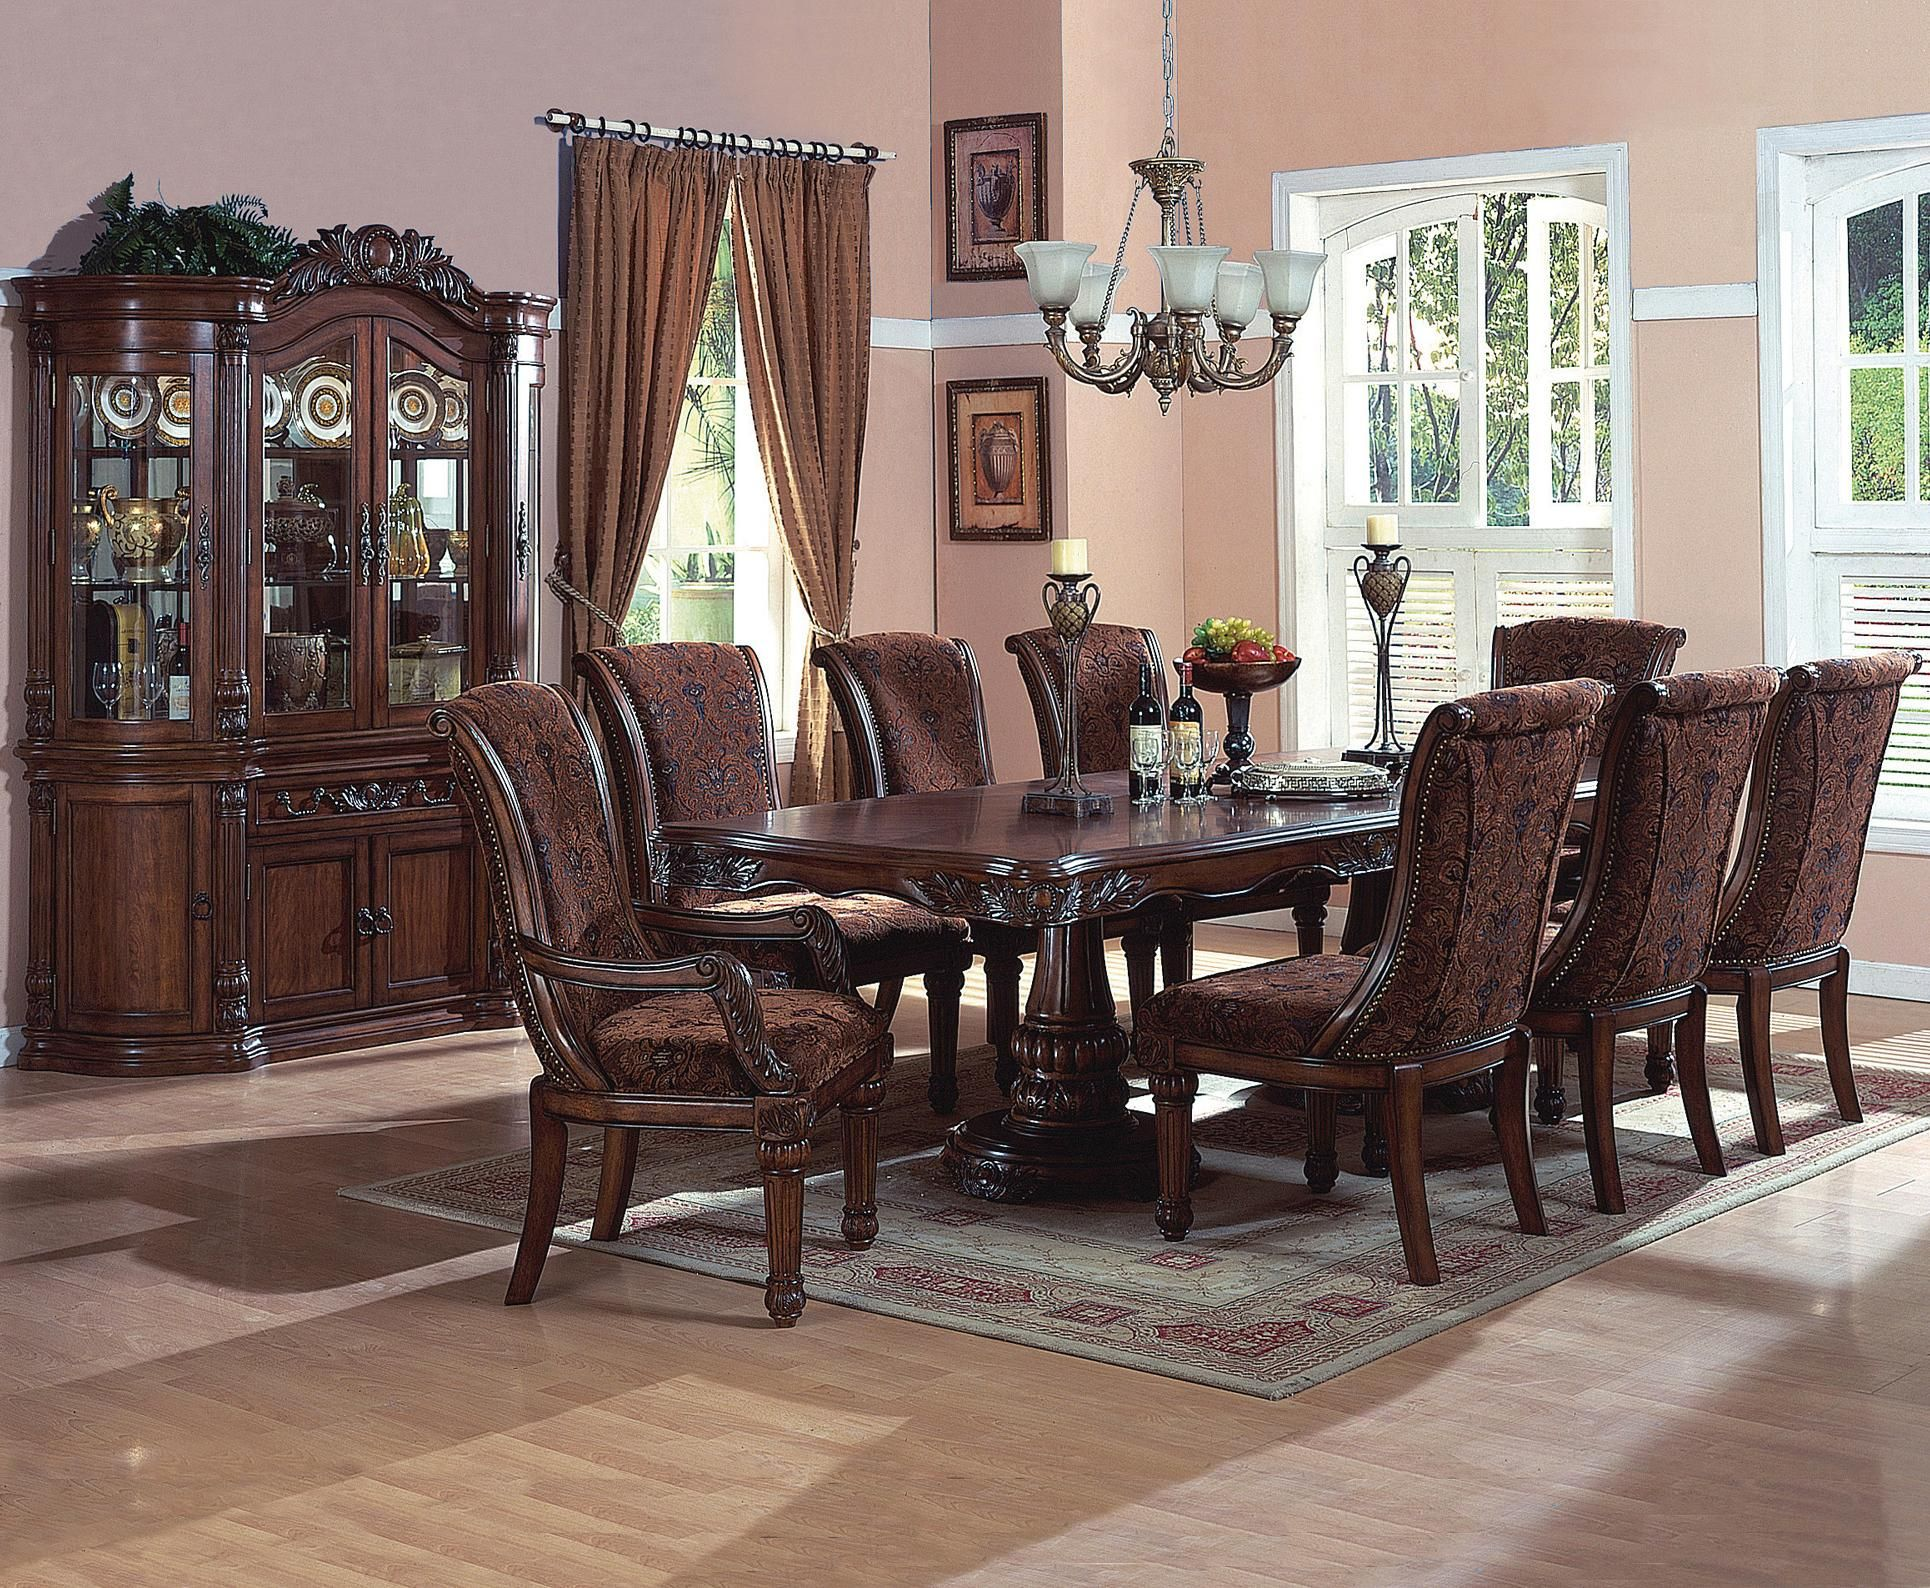 Estelle 2120 By Crown Mark Wilcox Furniture Crown Mark Estelle